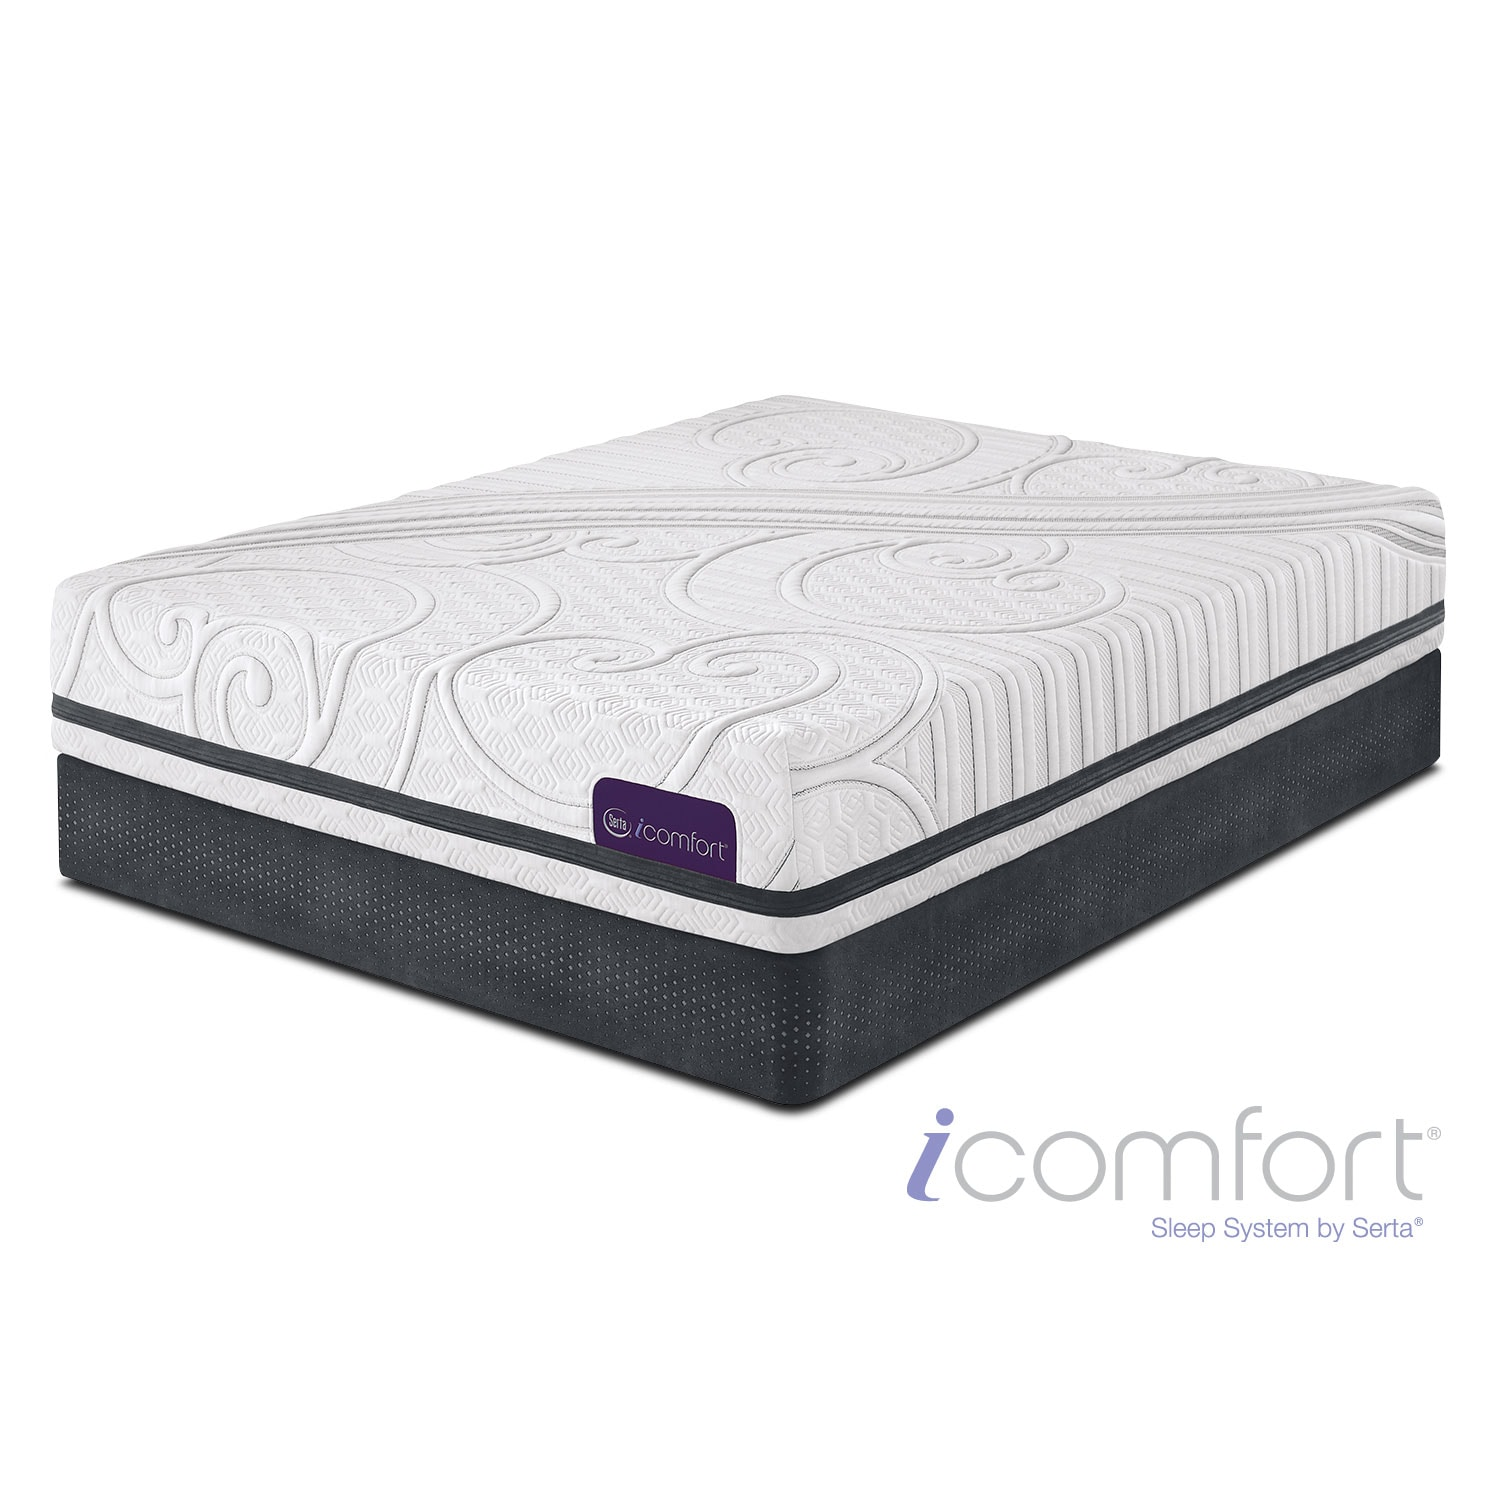 [Savant III Plush Full Mattress/Foundation Set]